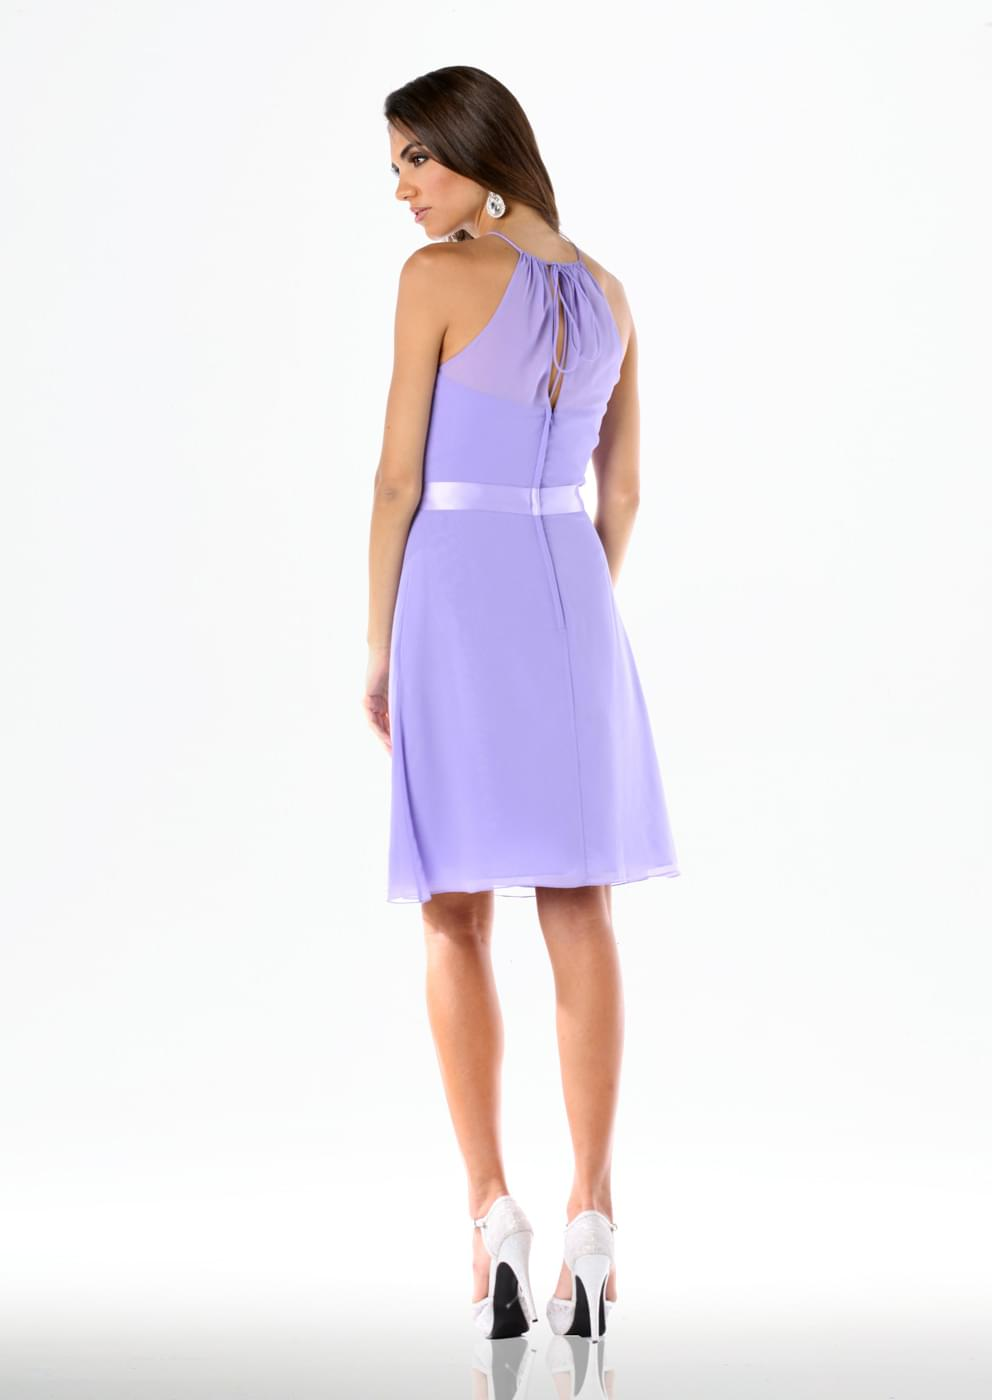 80042 Dresses with Straps By Ashdon